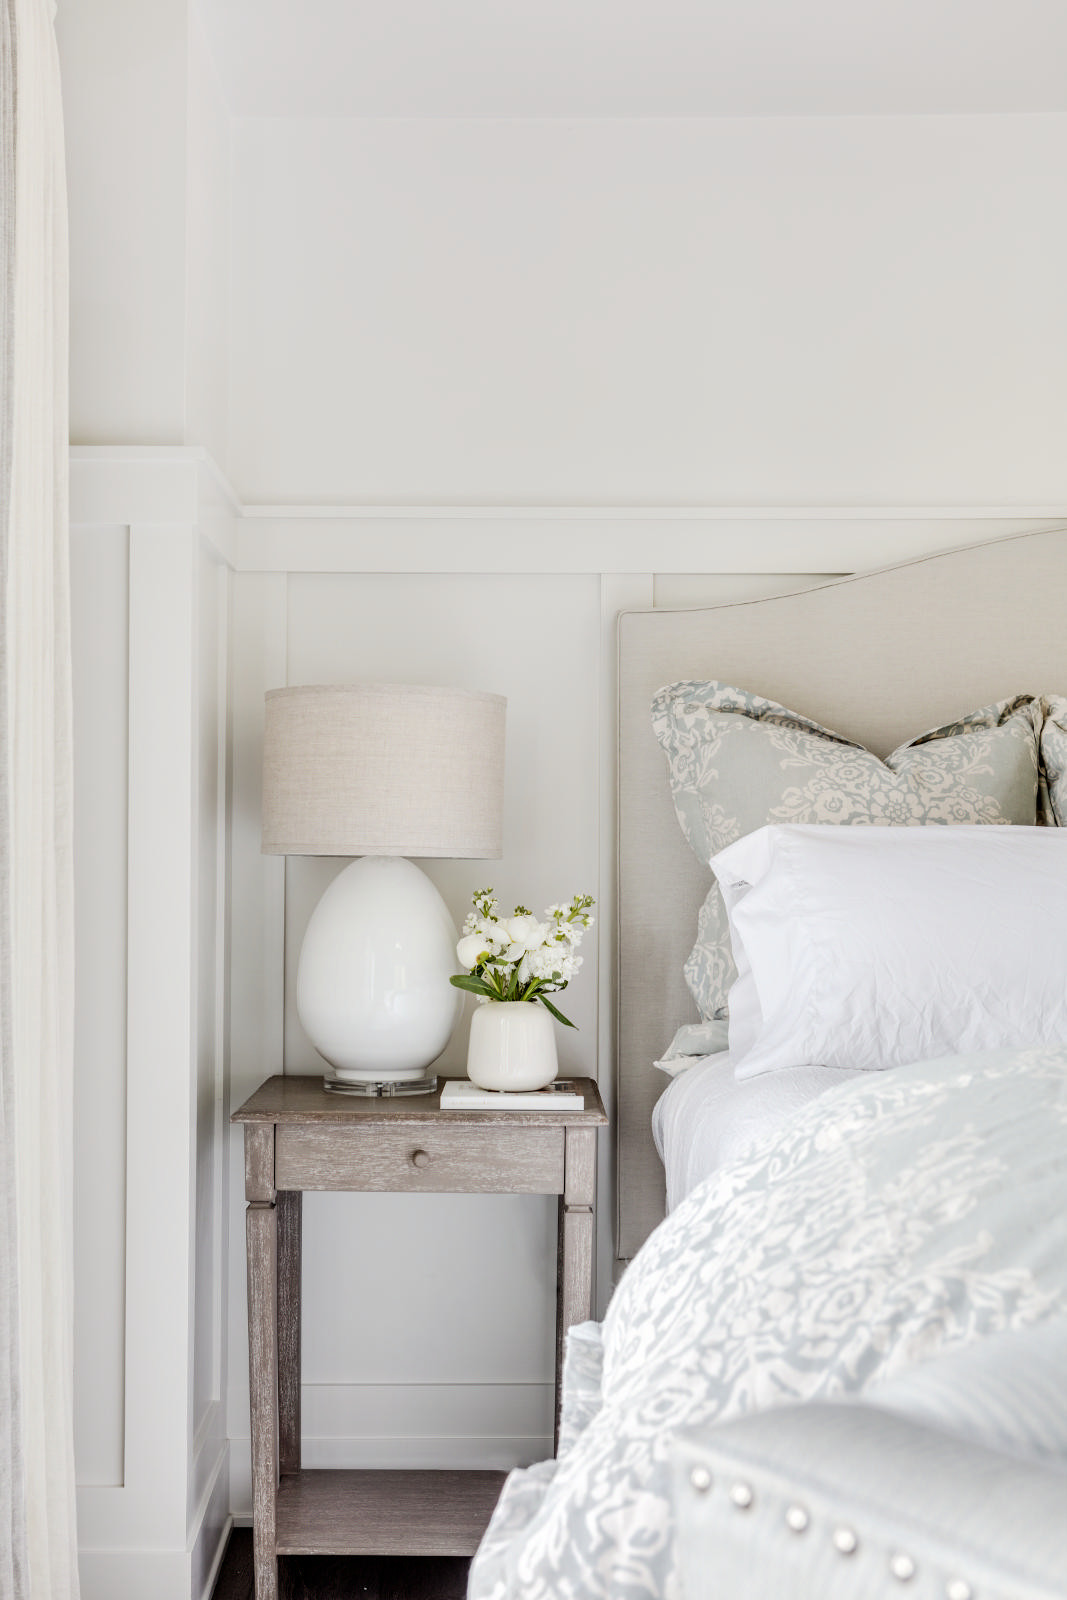 How pretty is the bedding and the sweet nightstand?